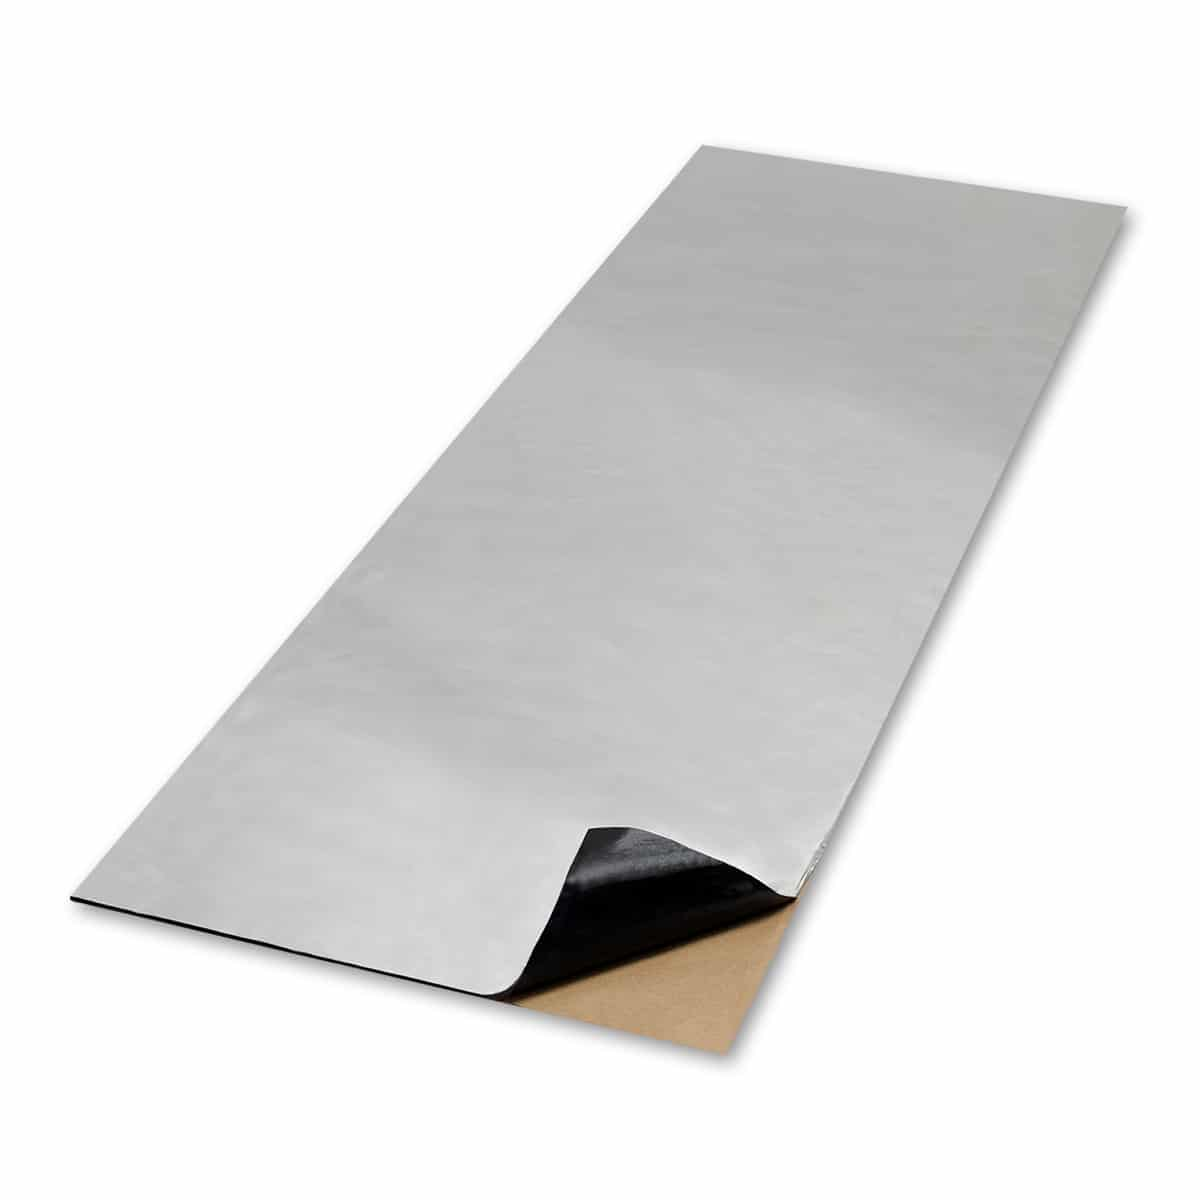 Vibstop Vibration Damping Sheet Acoustical Solutions